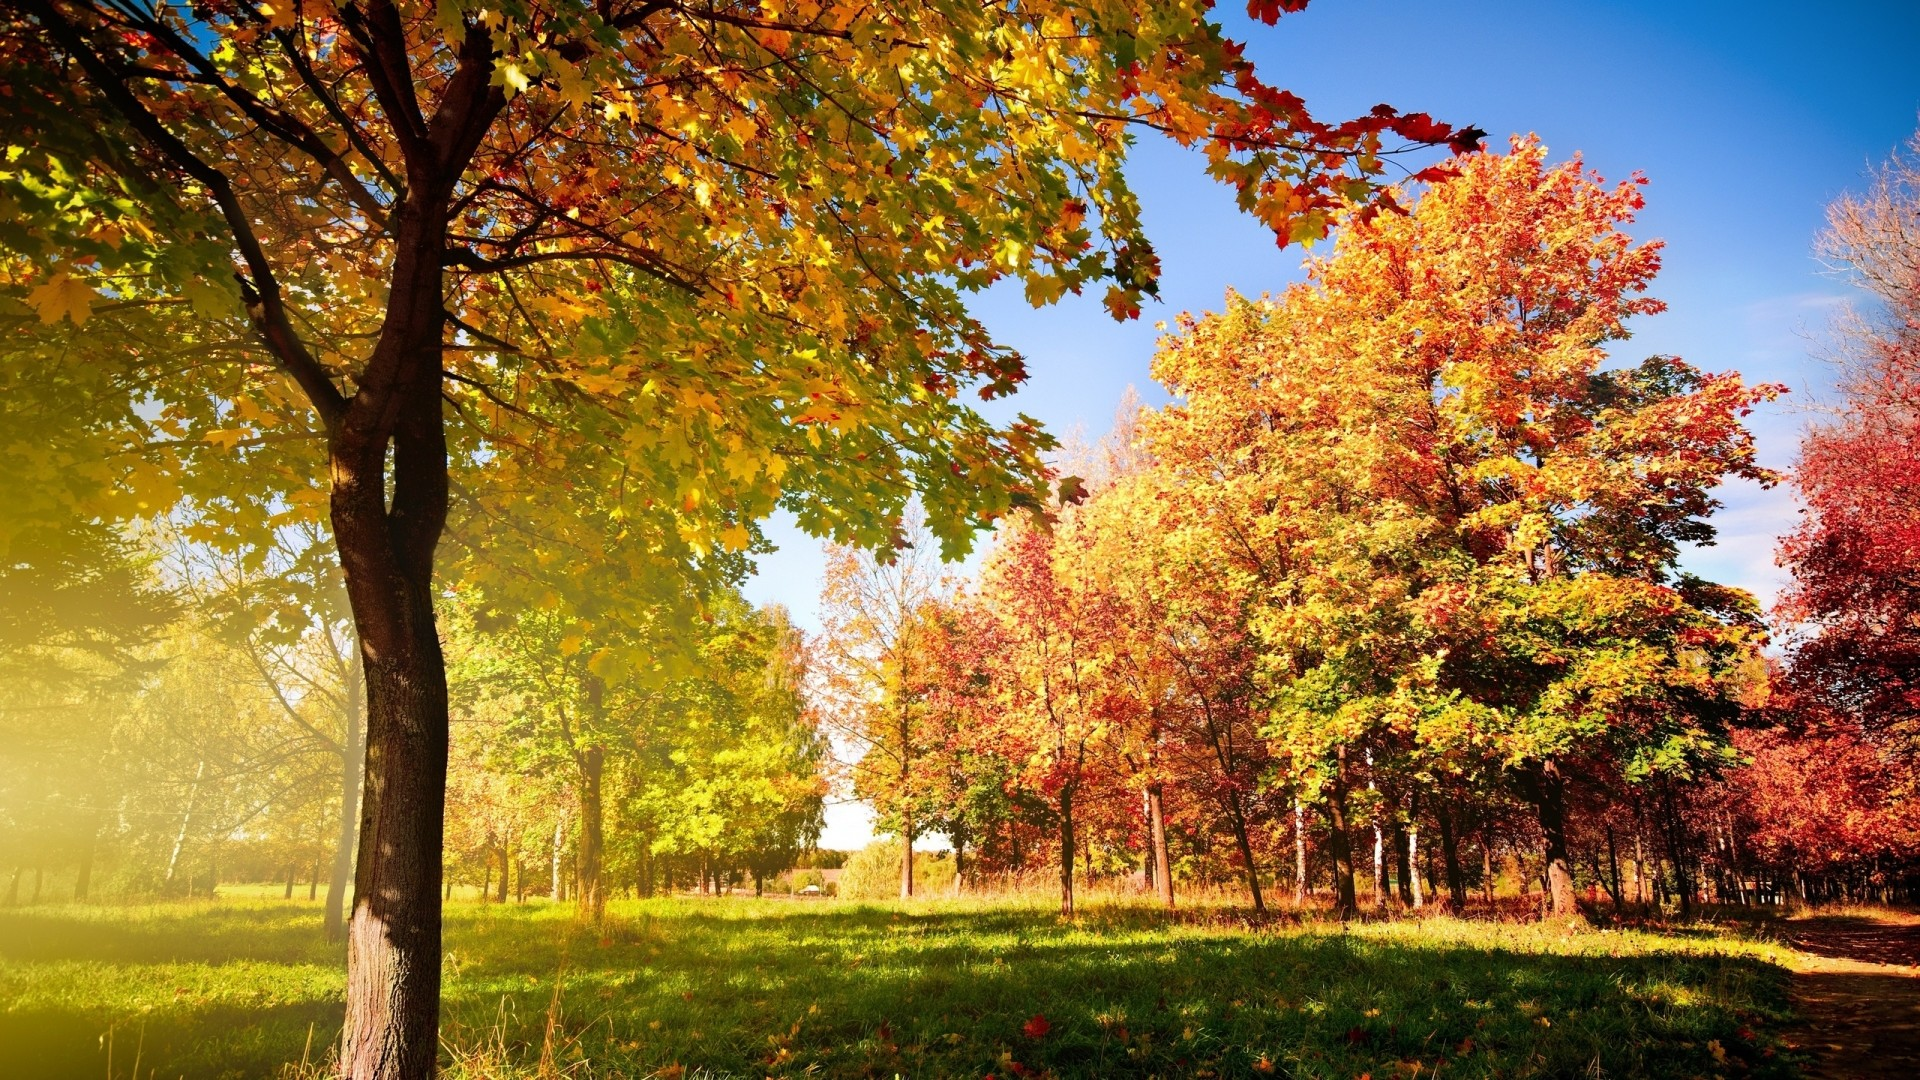 Colorful nature wallpapers - Nature wallpaper 2560x1600 ...